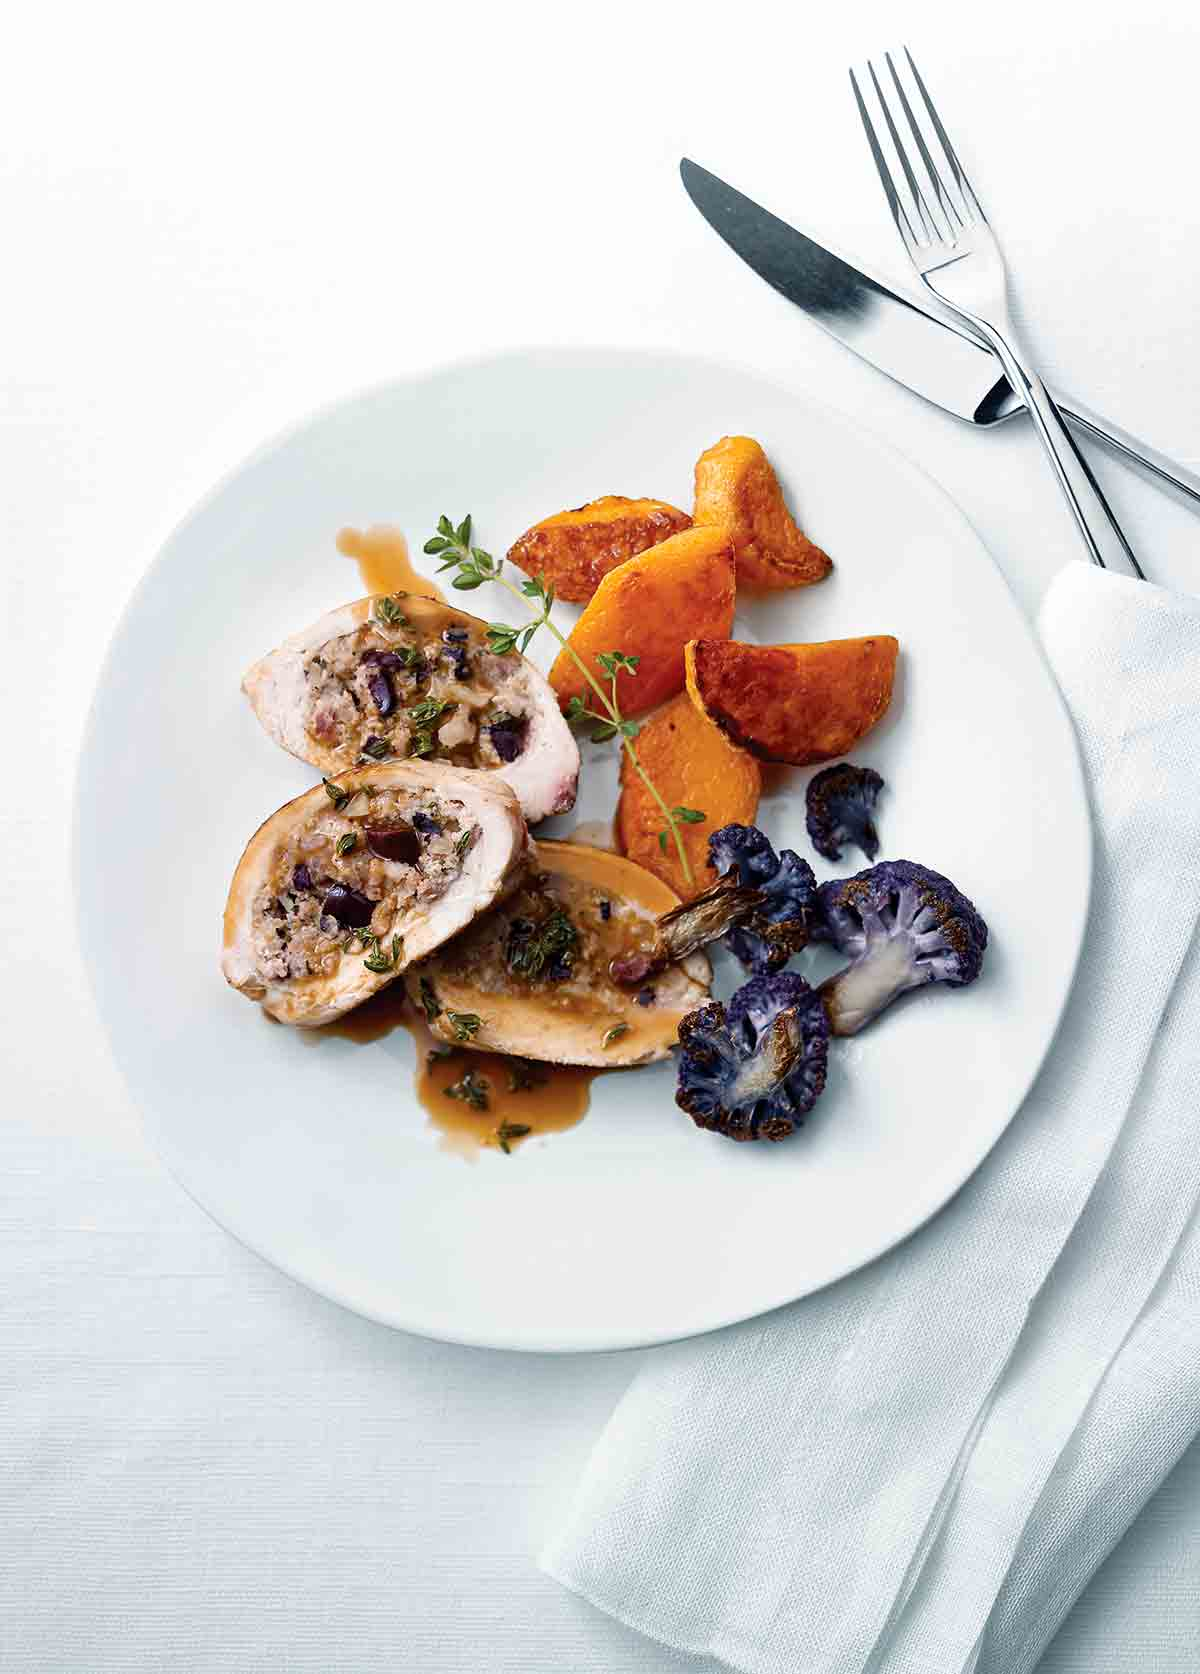 A sliced Mediterranean-style stuffed chicken breast on a white plate with purple cauliflower, sweet potato, and a sprig of thyme.